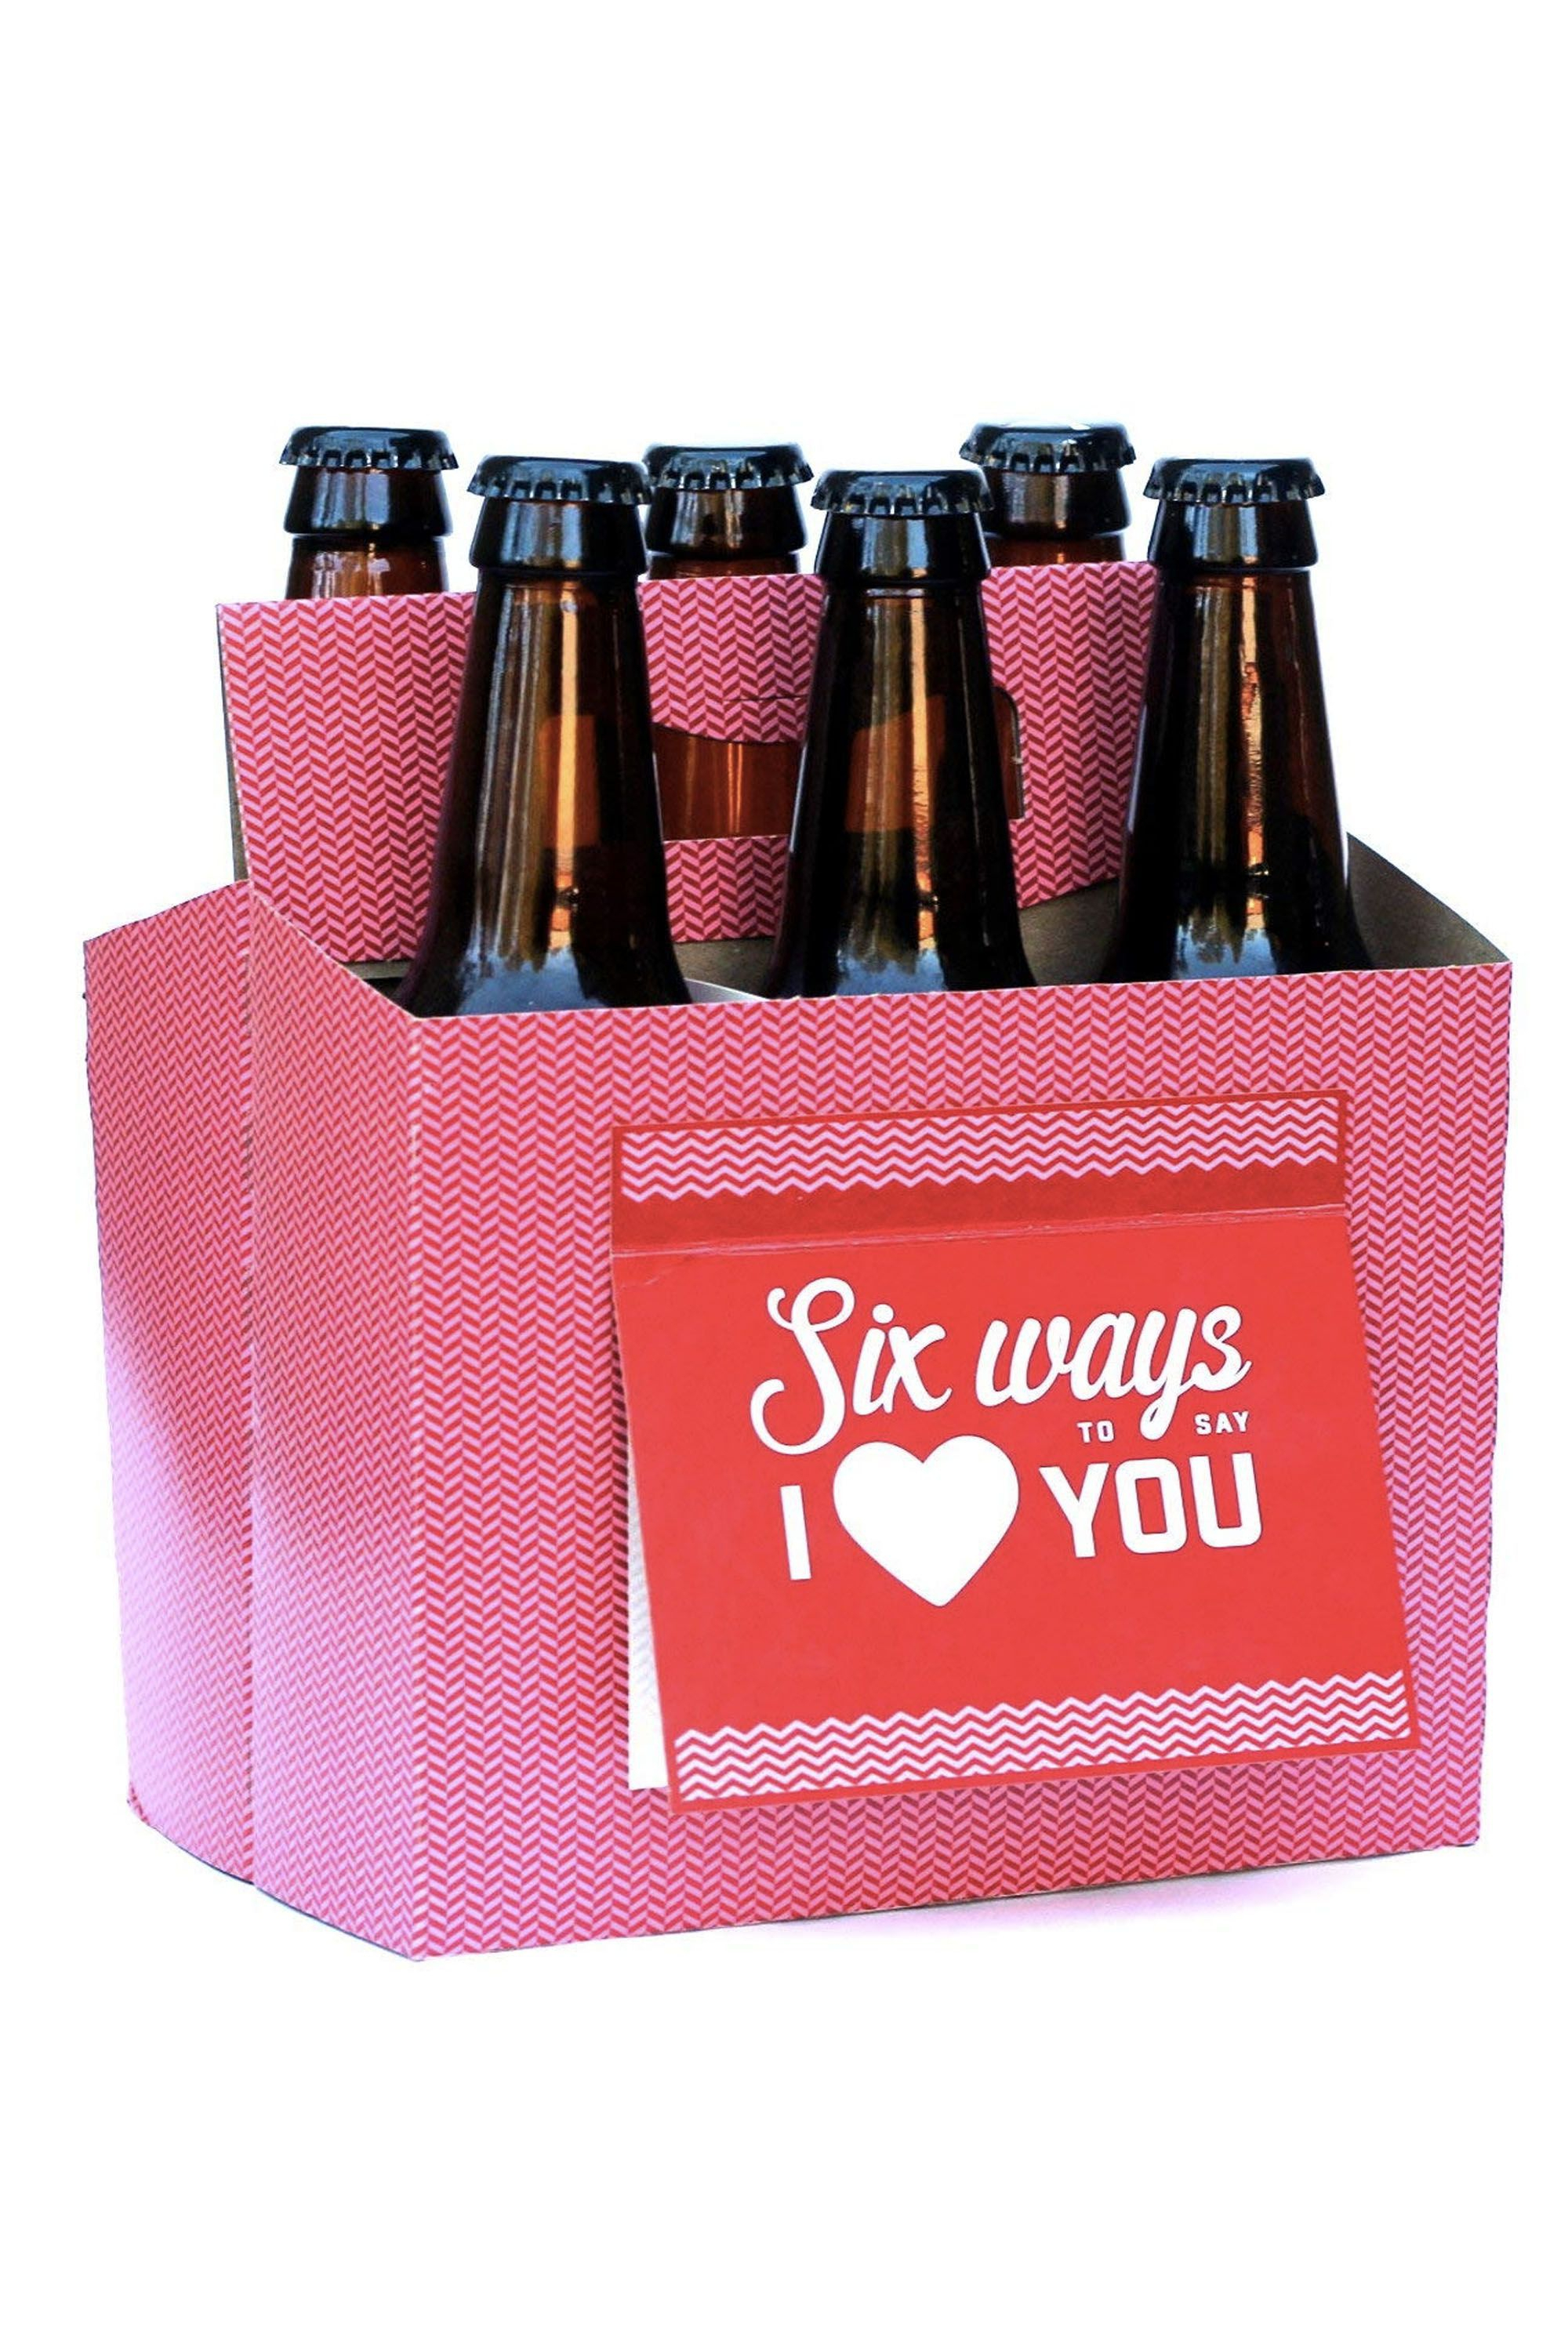 10 Spectacular Valentines Gift Idea For Him 50 best valentines day gifts for him 2019 good ideas for 1 2020